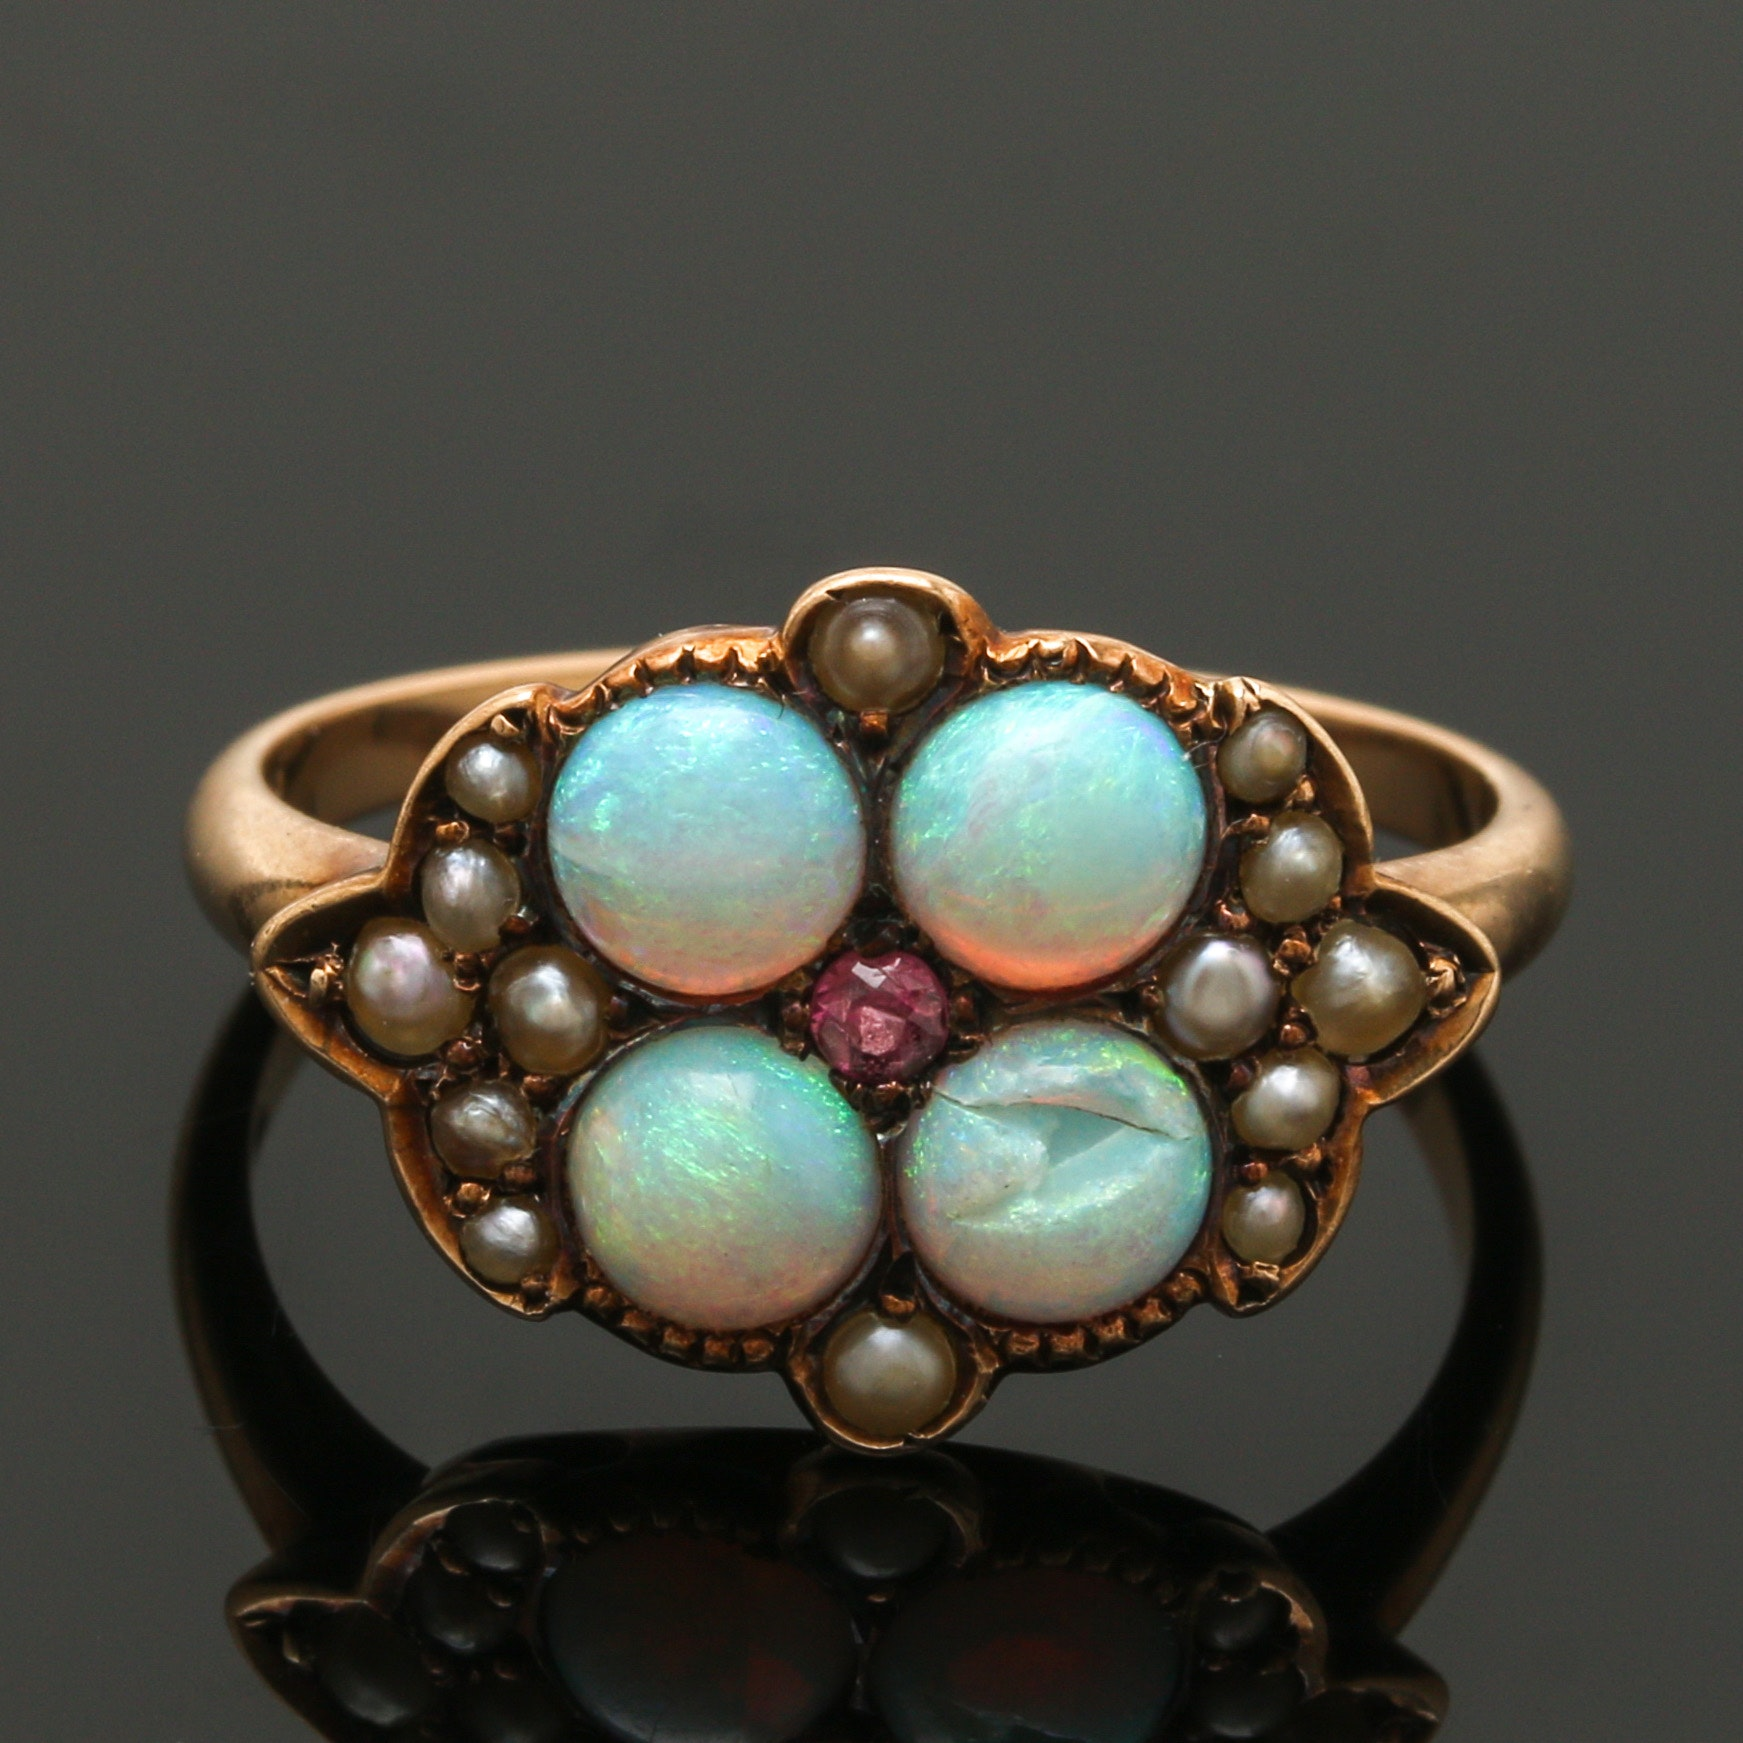 Victorian 10K Yellow Gold Opal, Rhodolite Garnet and Seed Pearl Ring